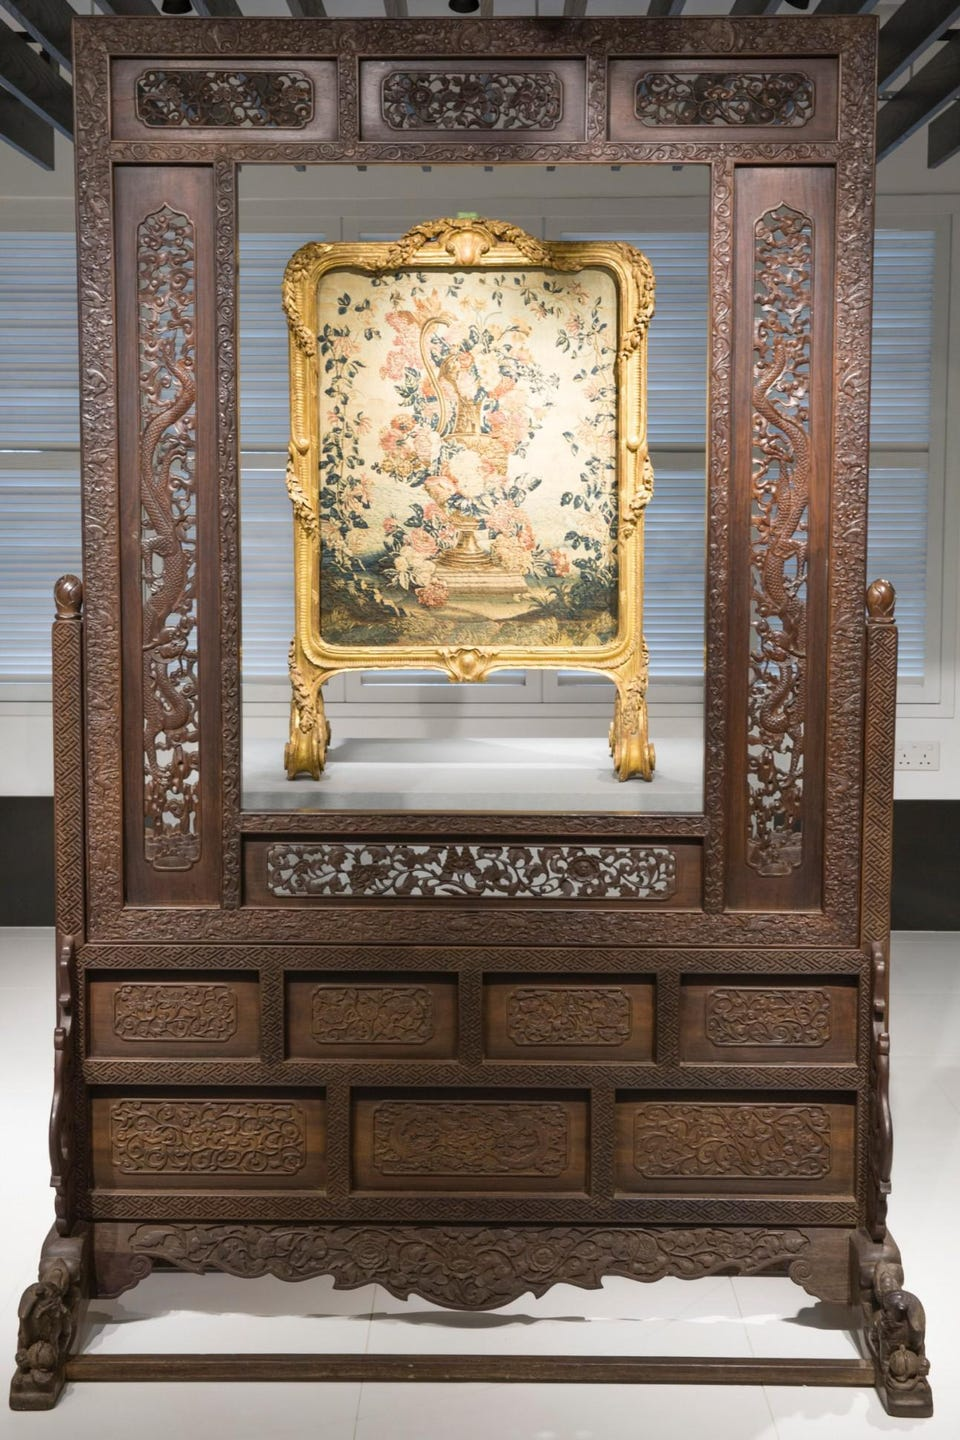 Salon Louis Xiv Meuble To The Kraemer Gallery Selling 18th Century French Antiques Is More